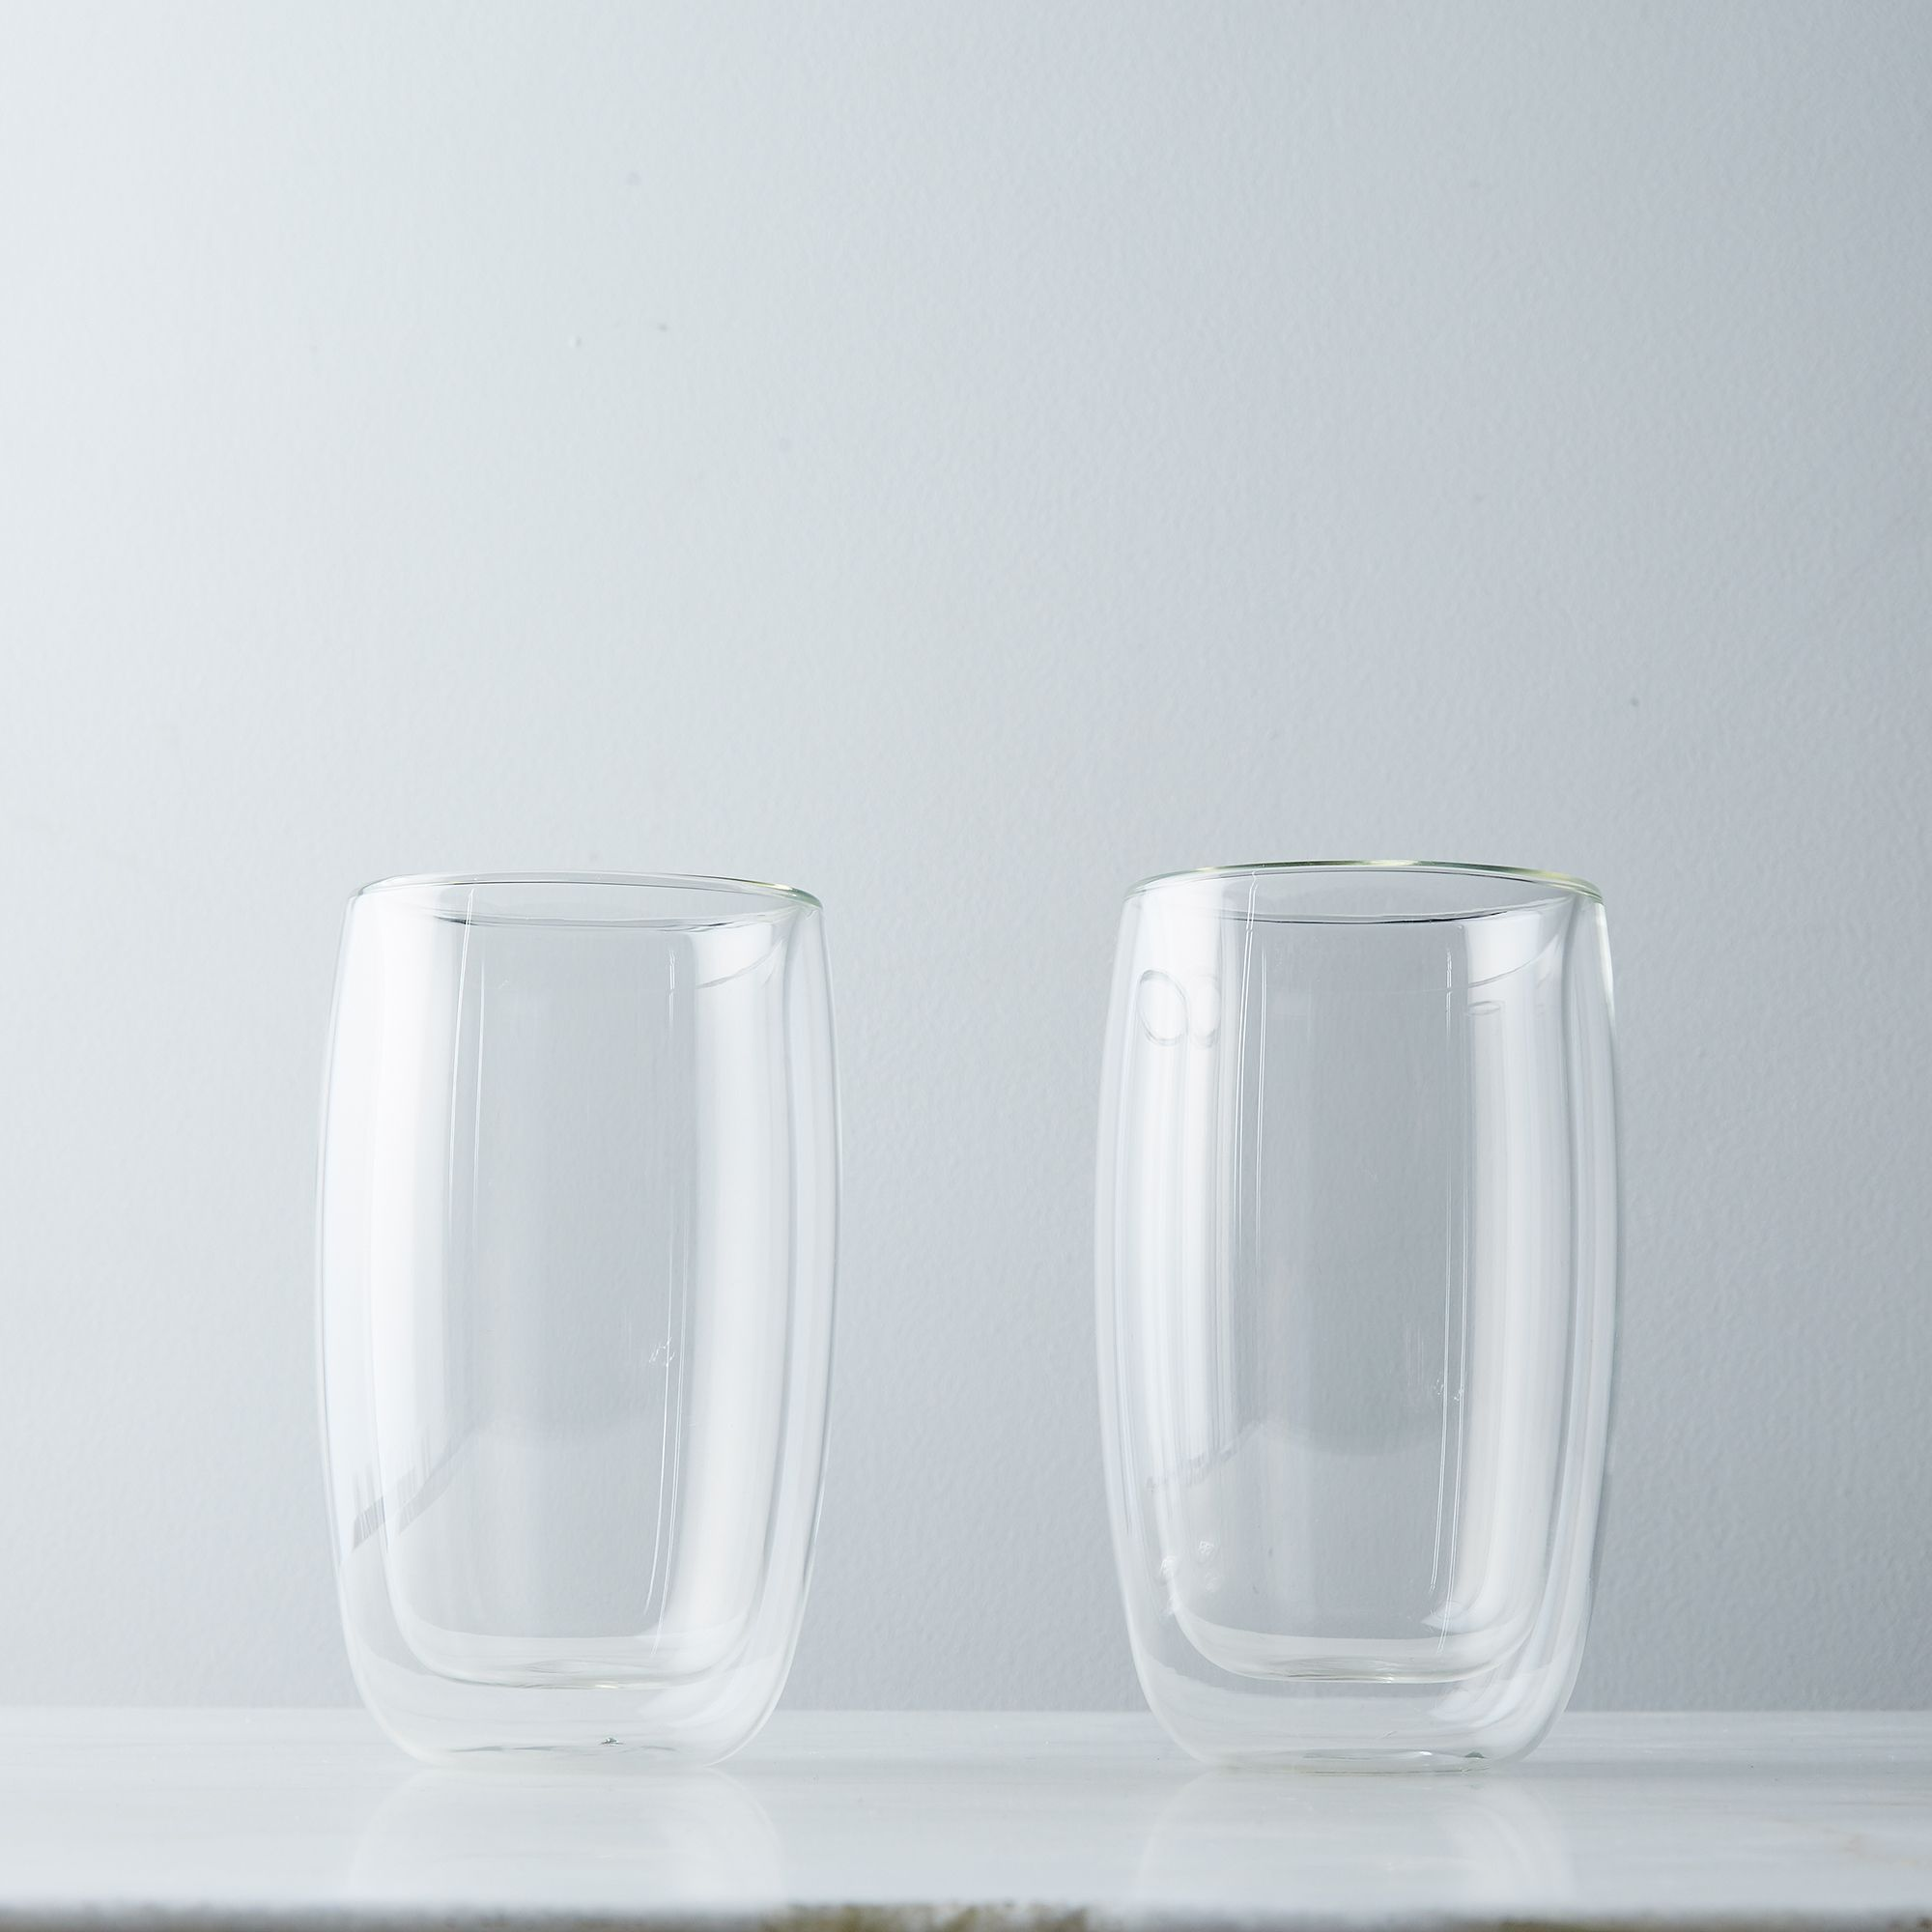 31ea7894 a0f9 11e5 a190 0ef7535729df  2015 1104 zwilling double wall glassware double wall latte glasses set of 2 silo james ransom 216